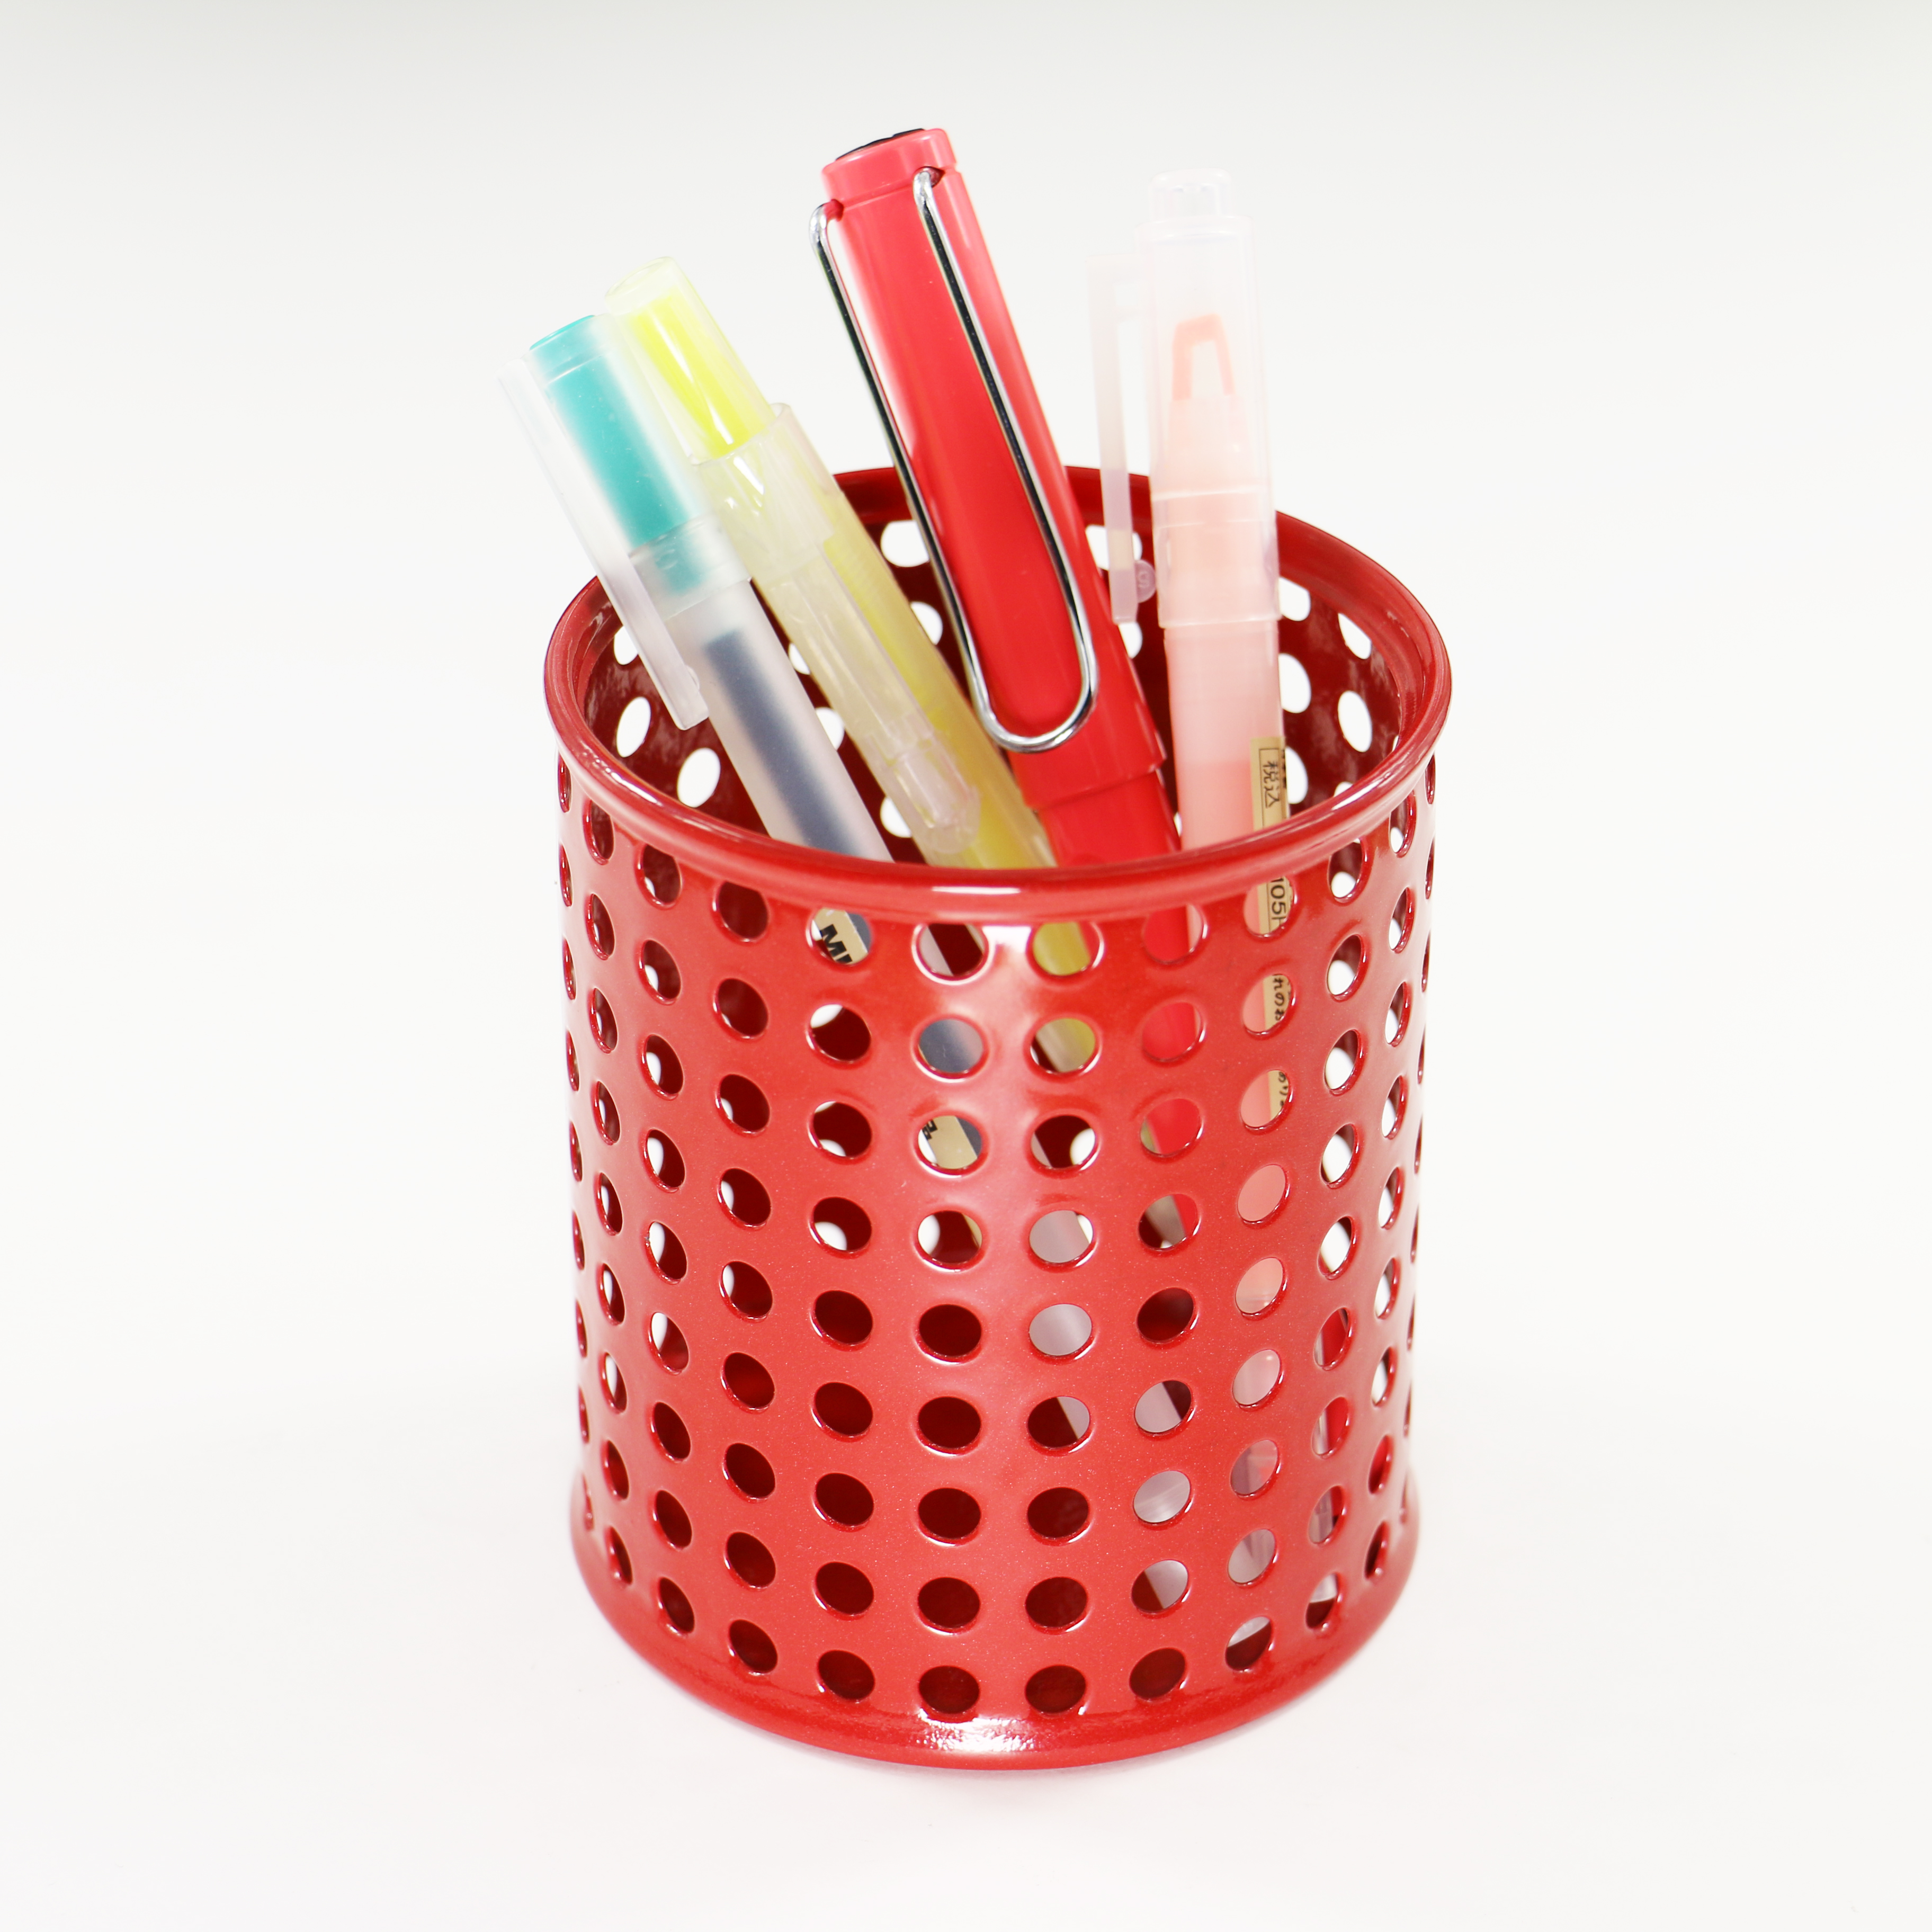 Rose Gold Wire Net Pencil Holder Round Iron Mesh Pen Cup Stationery Organizer Desk Sorter For Office Home School Moderate Cost Office & School Supplies